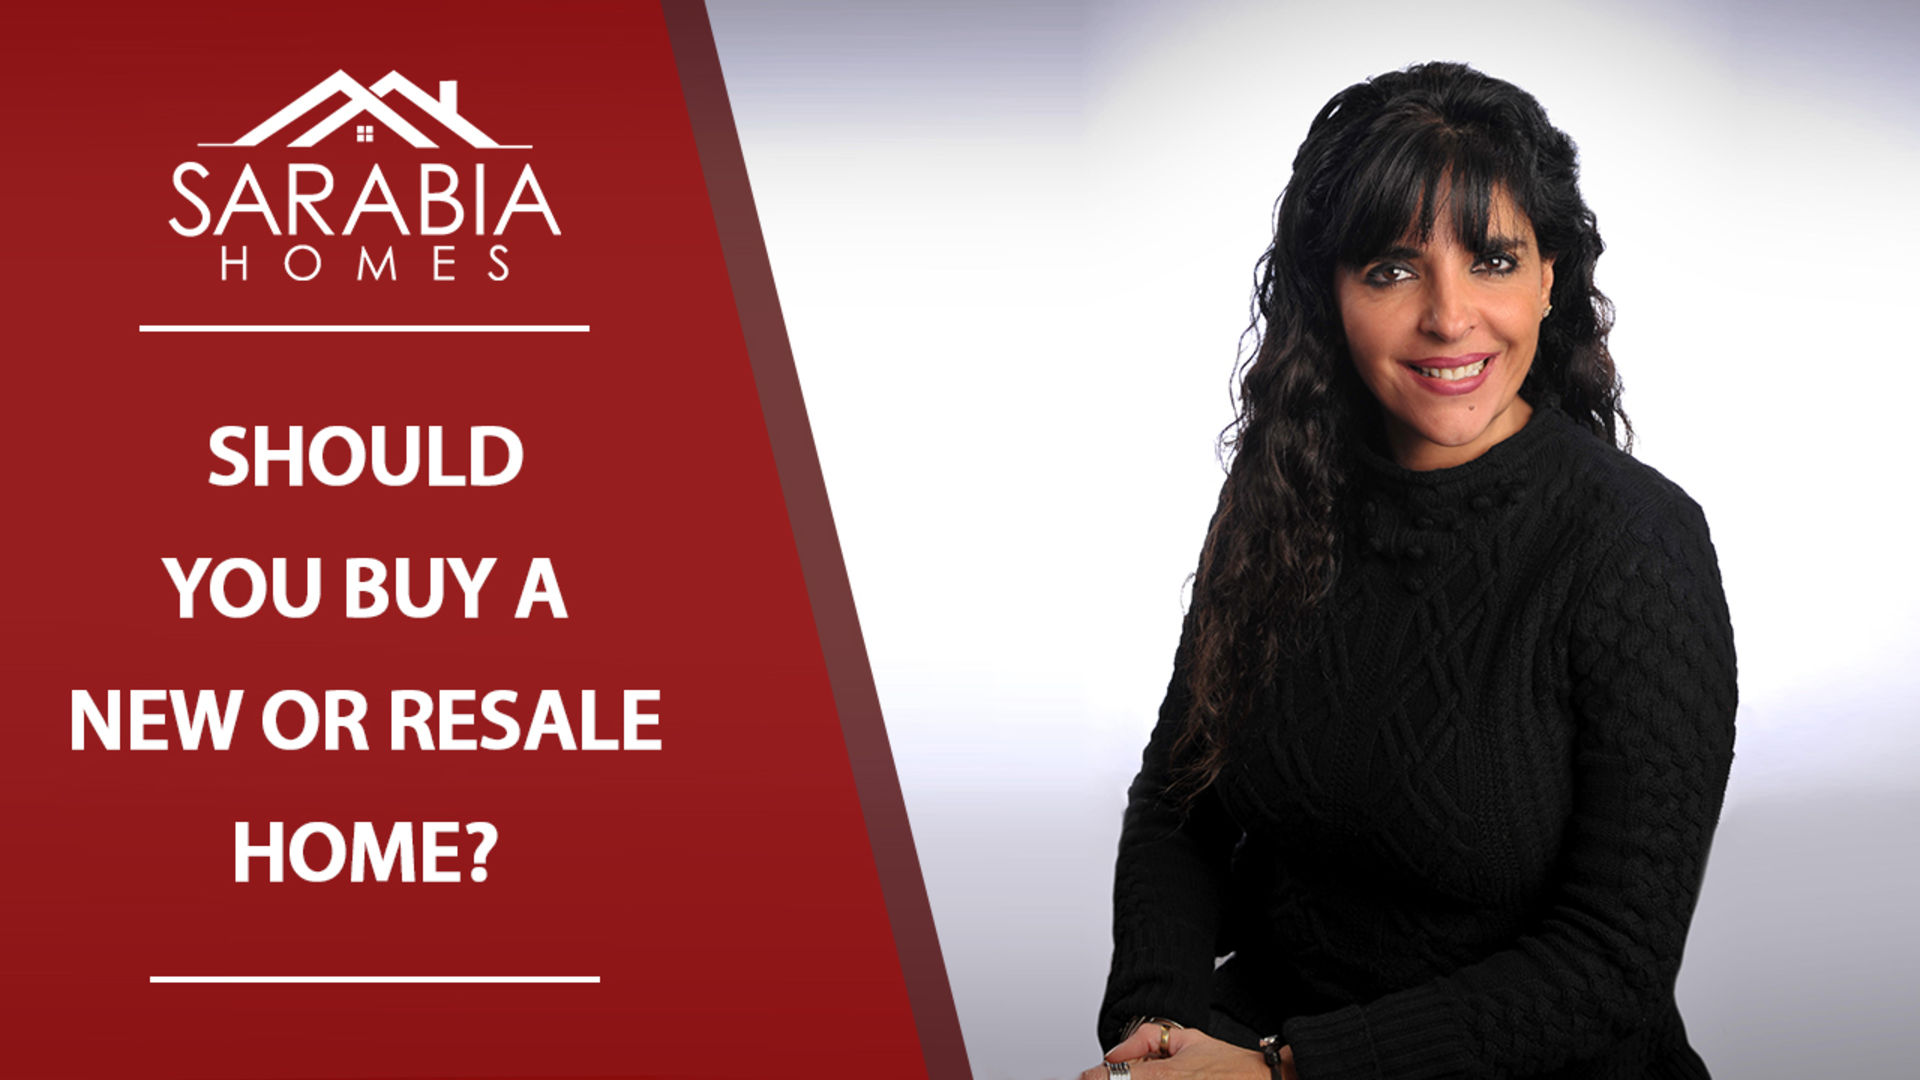 Buying a Resale Home vs. A Newly Constructed Home